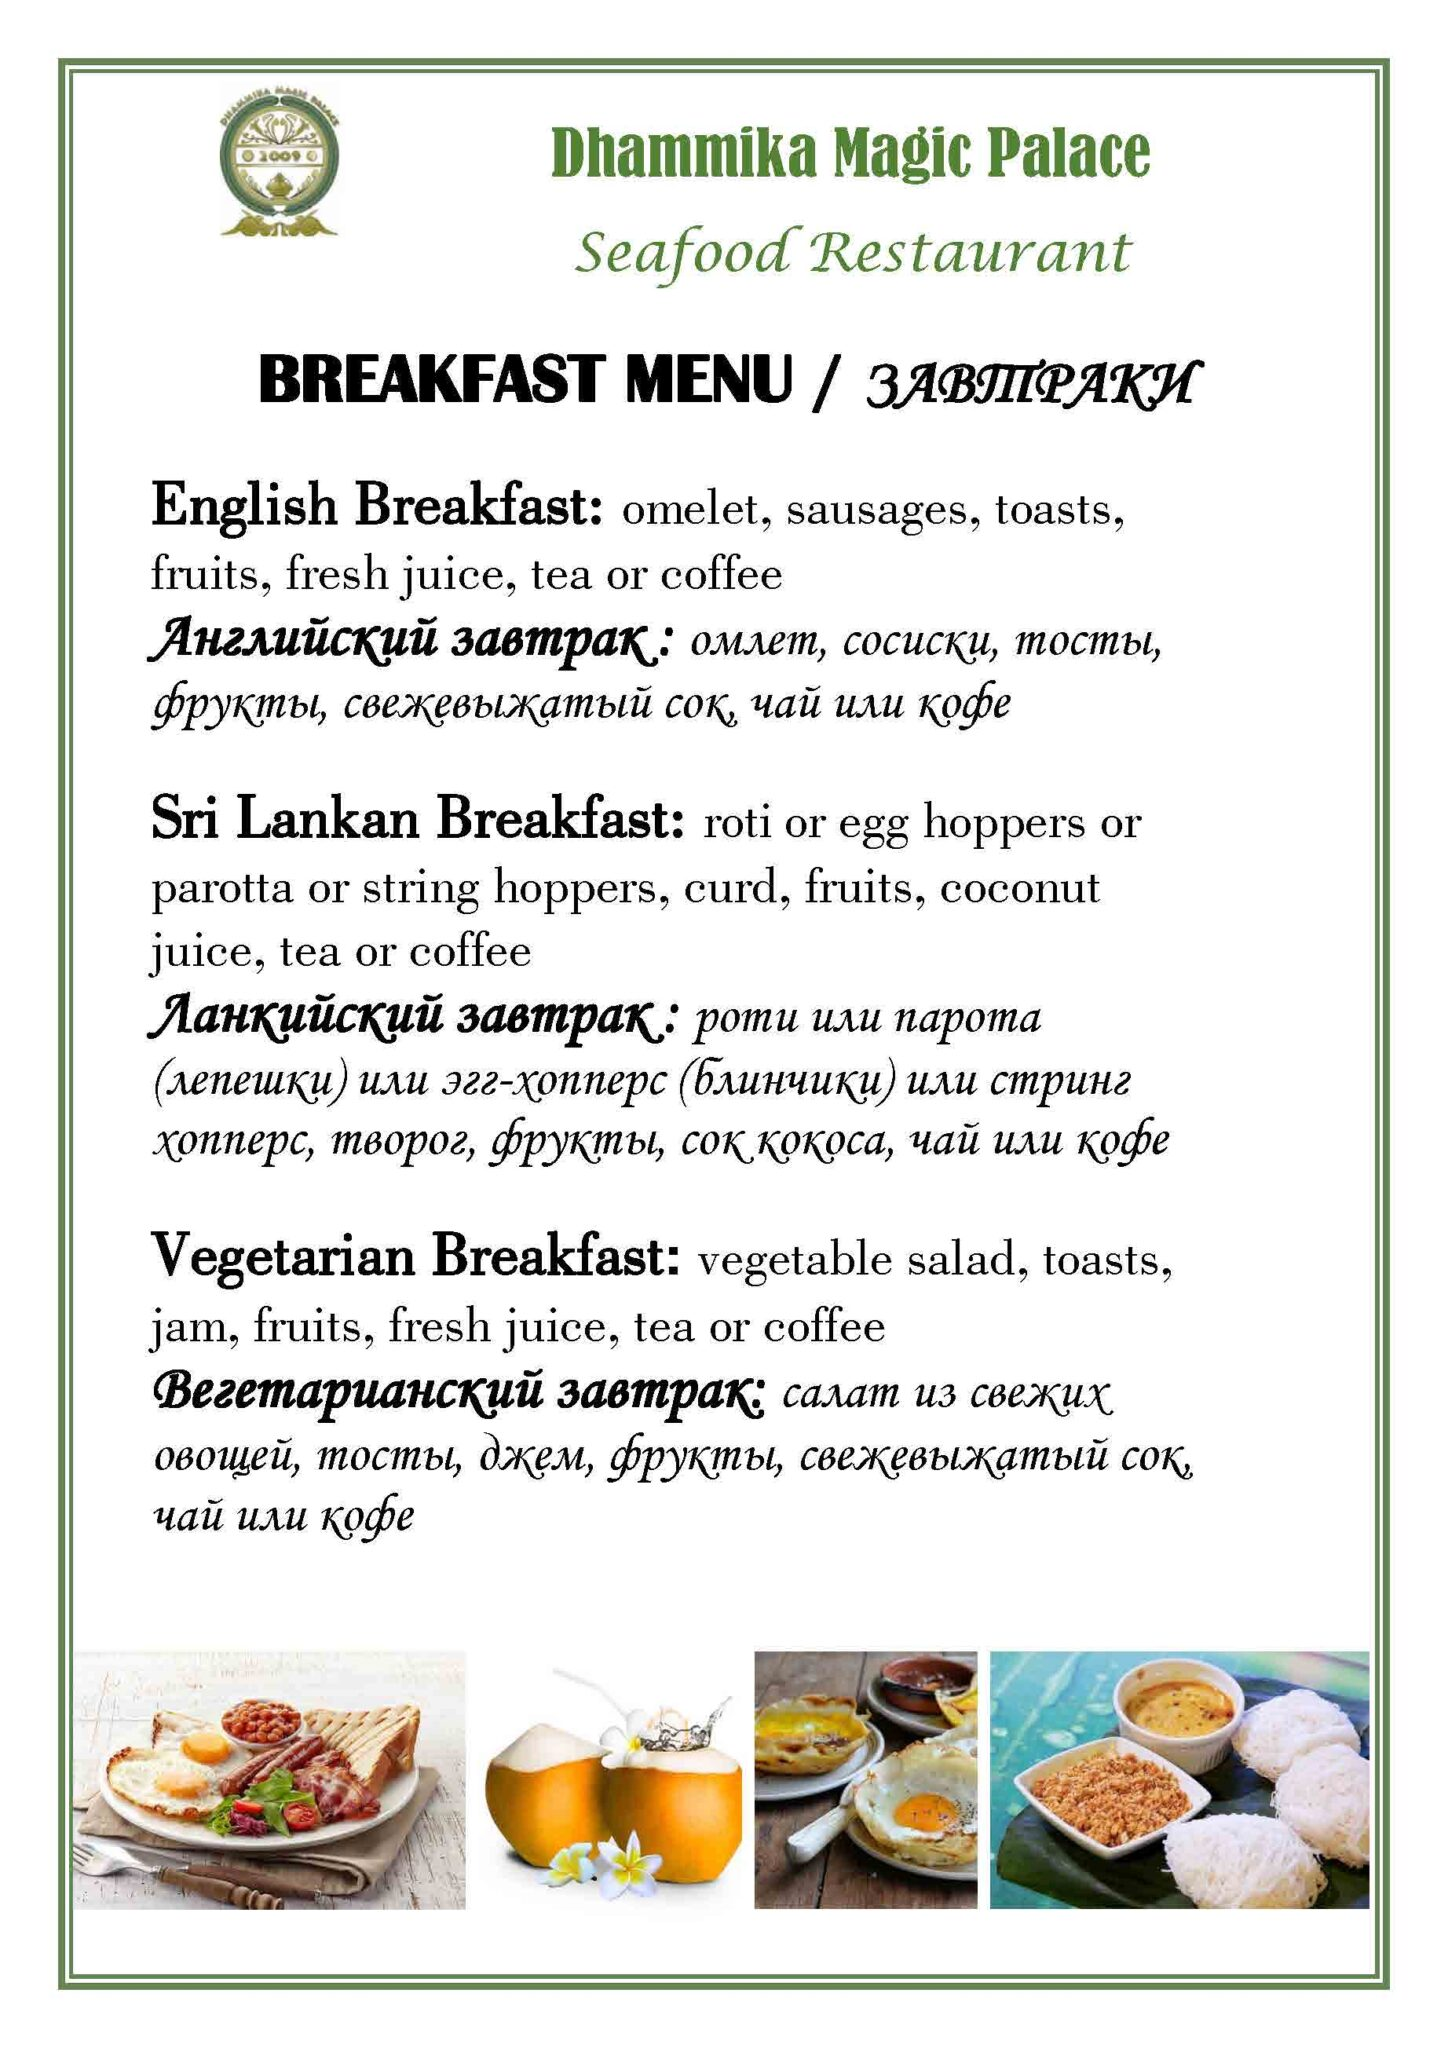 MENU2_16_Breakfast